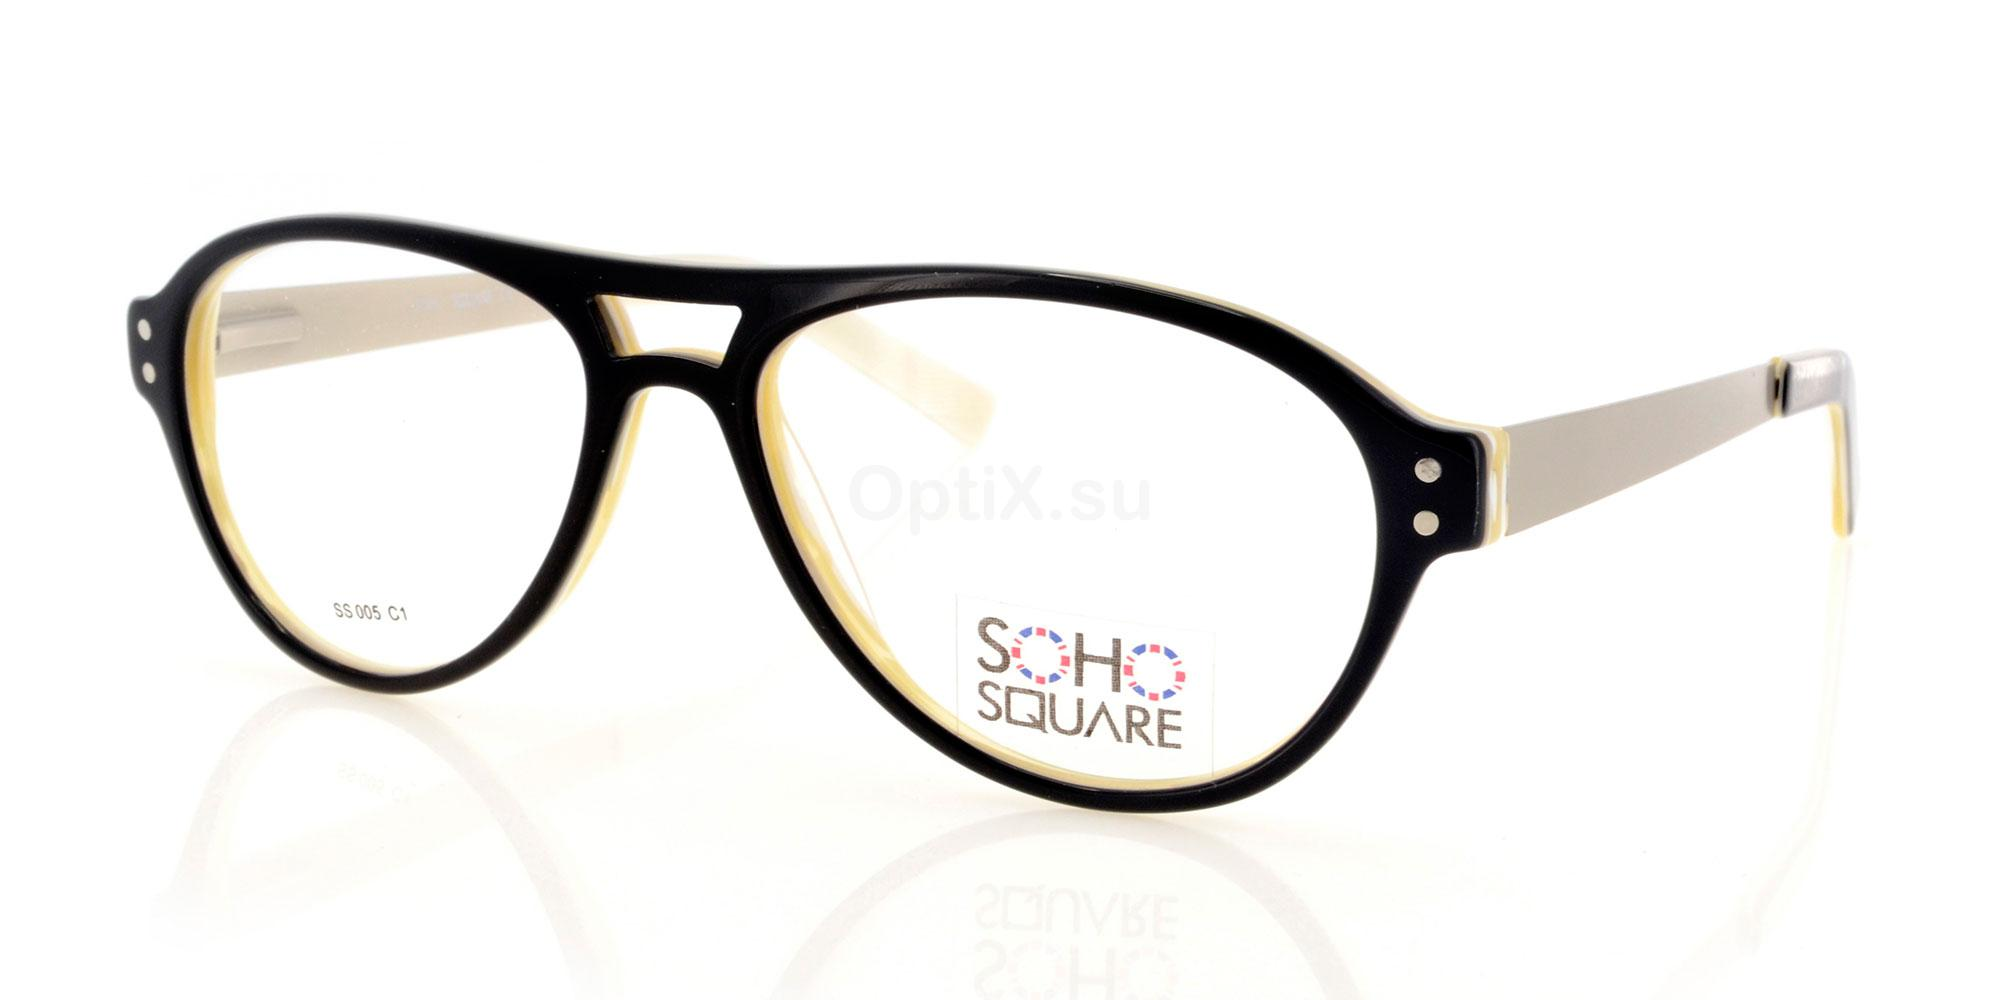 C1 SS 005 Glasses, Soho Square